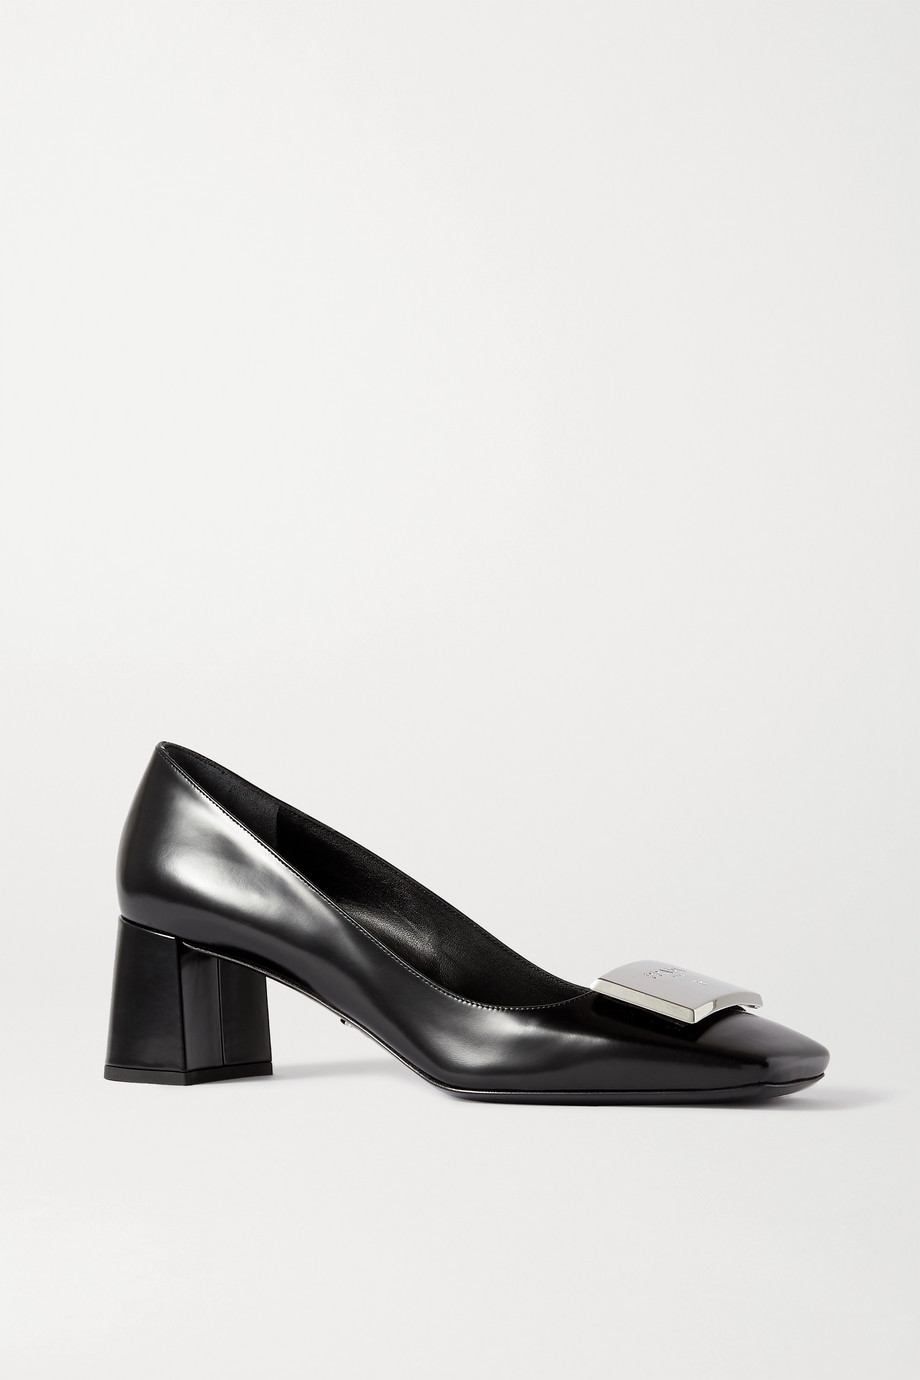 Prada 55 logo-embellished glossed-leather pumps